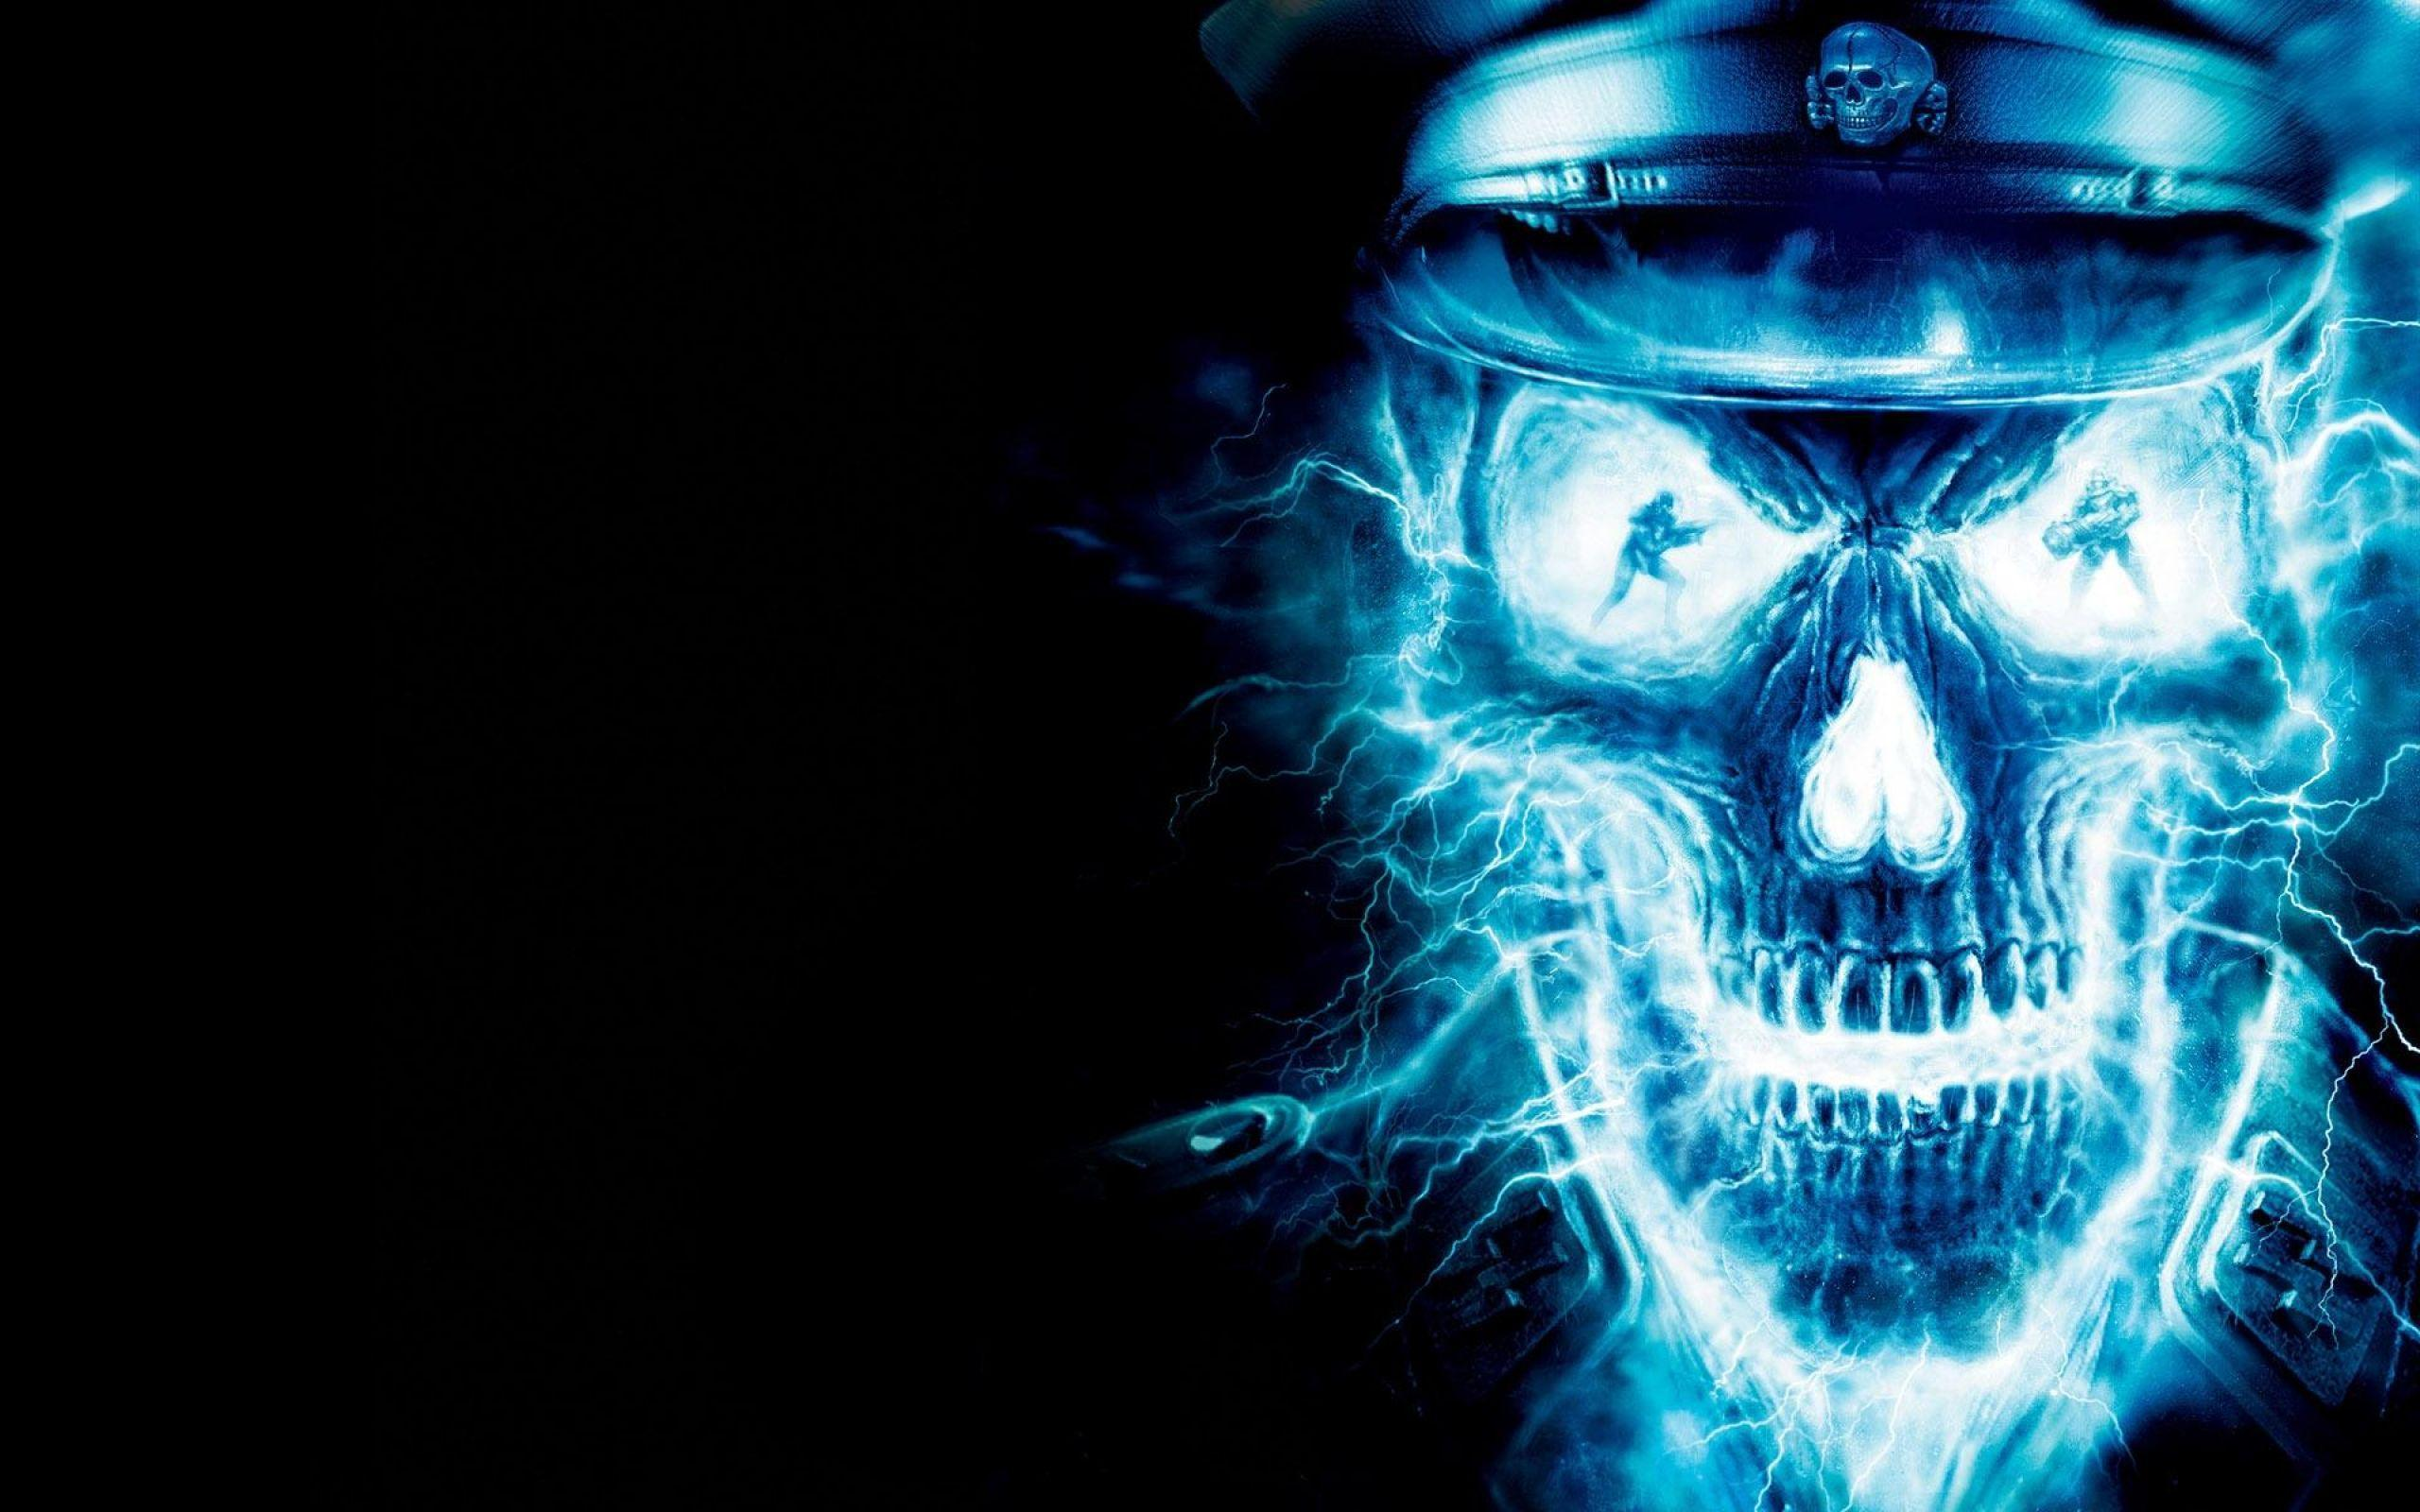 skull wallpaper wallpapers hd - photo #44